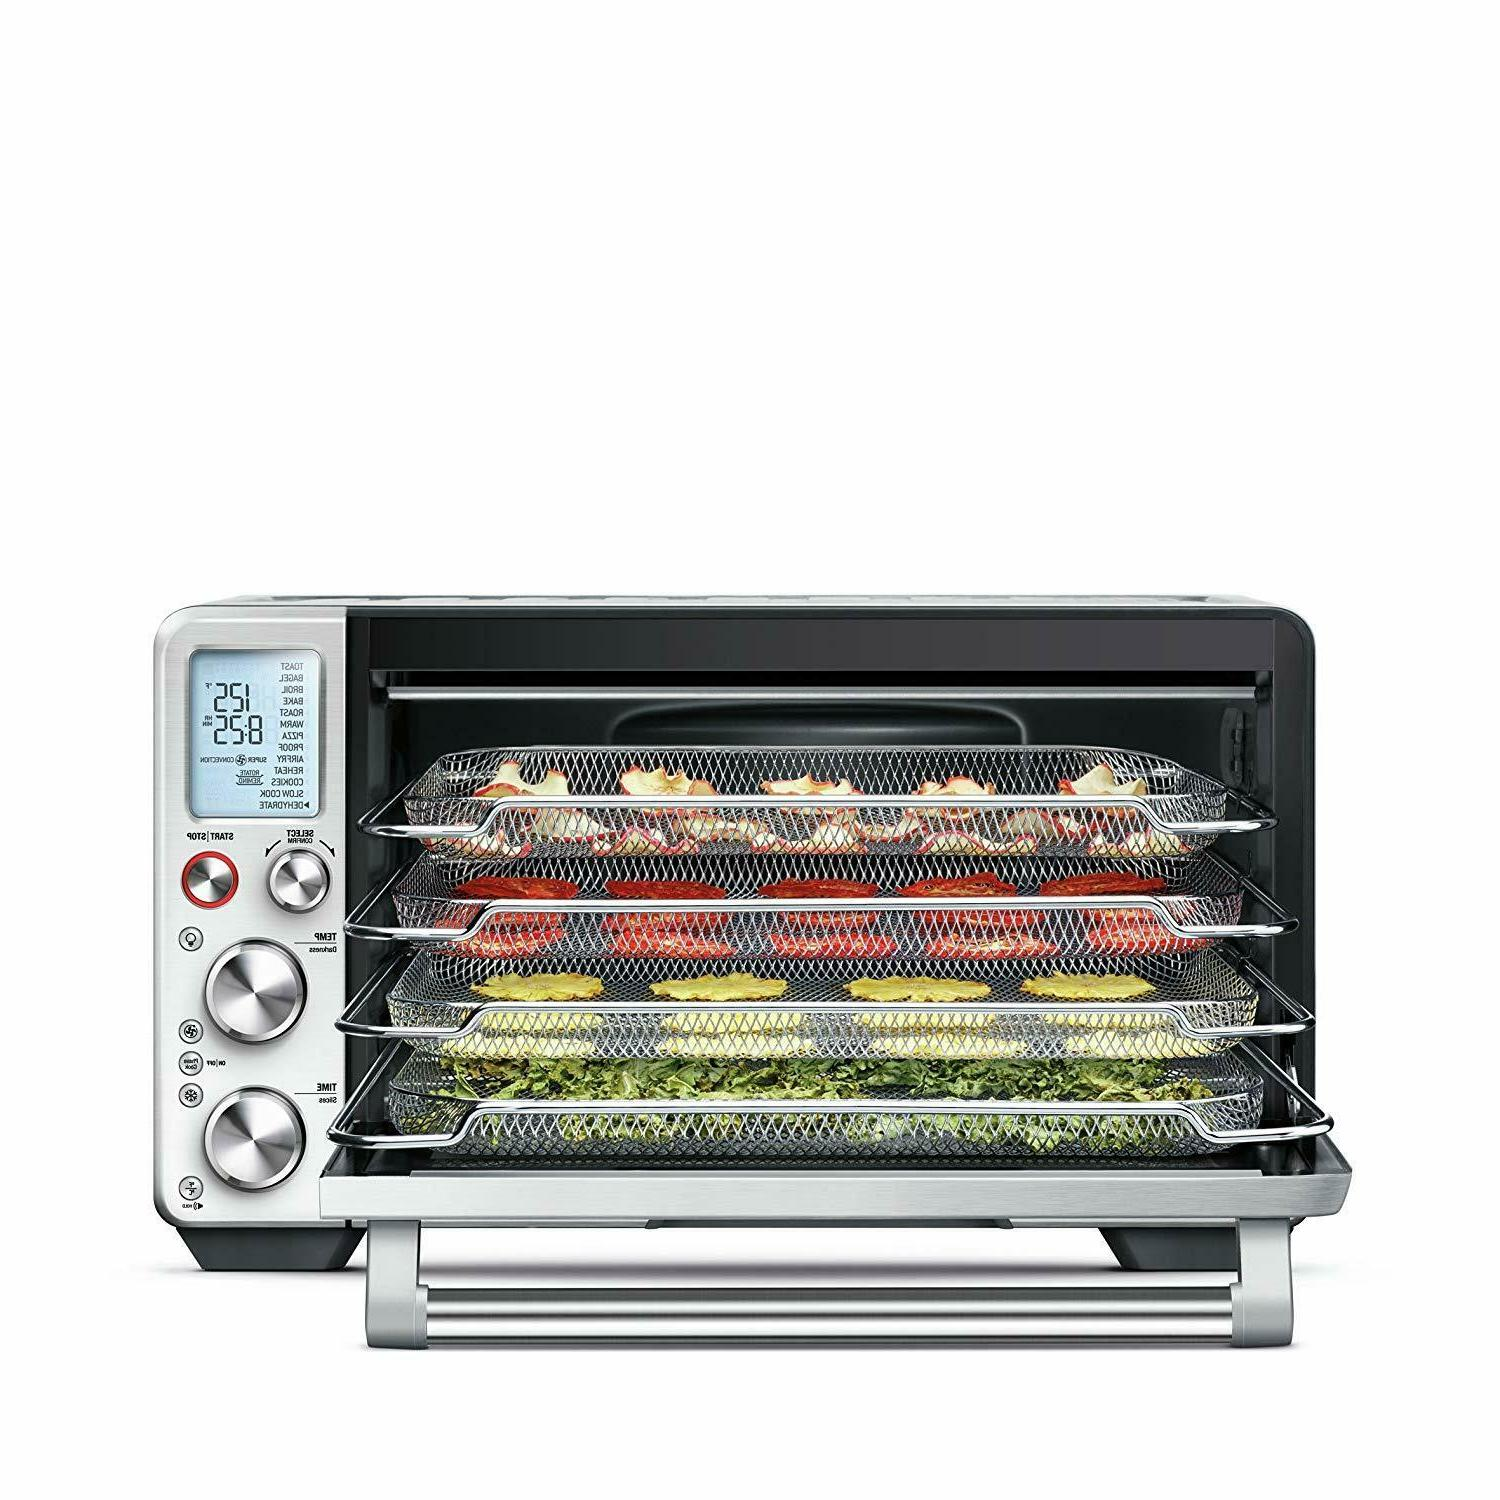 Breville Bov900bss Convection Air Fry Smart Oven Air